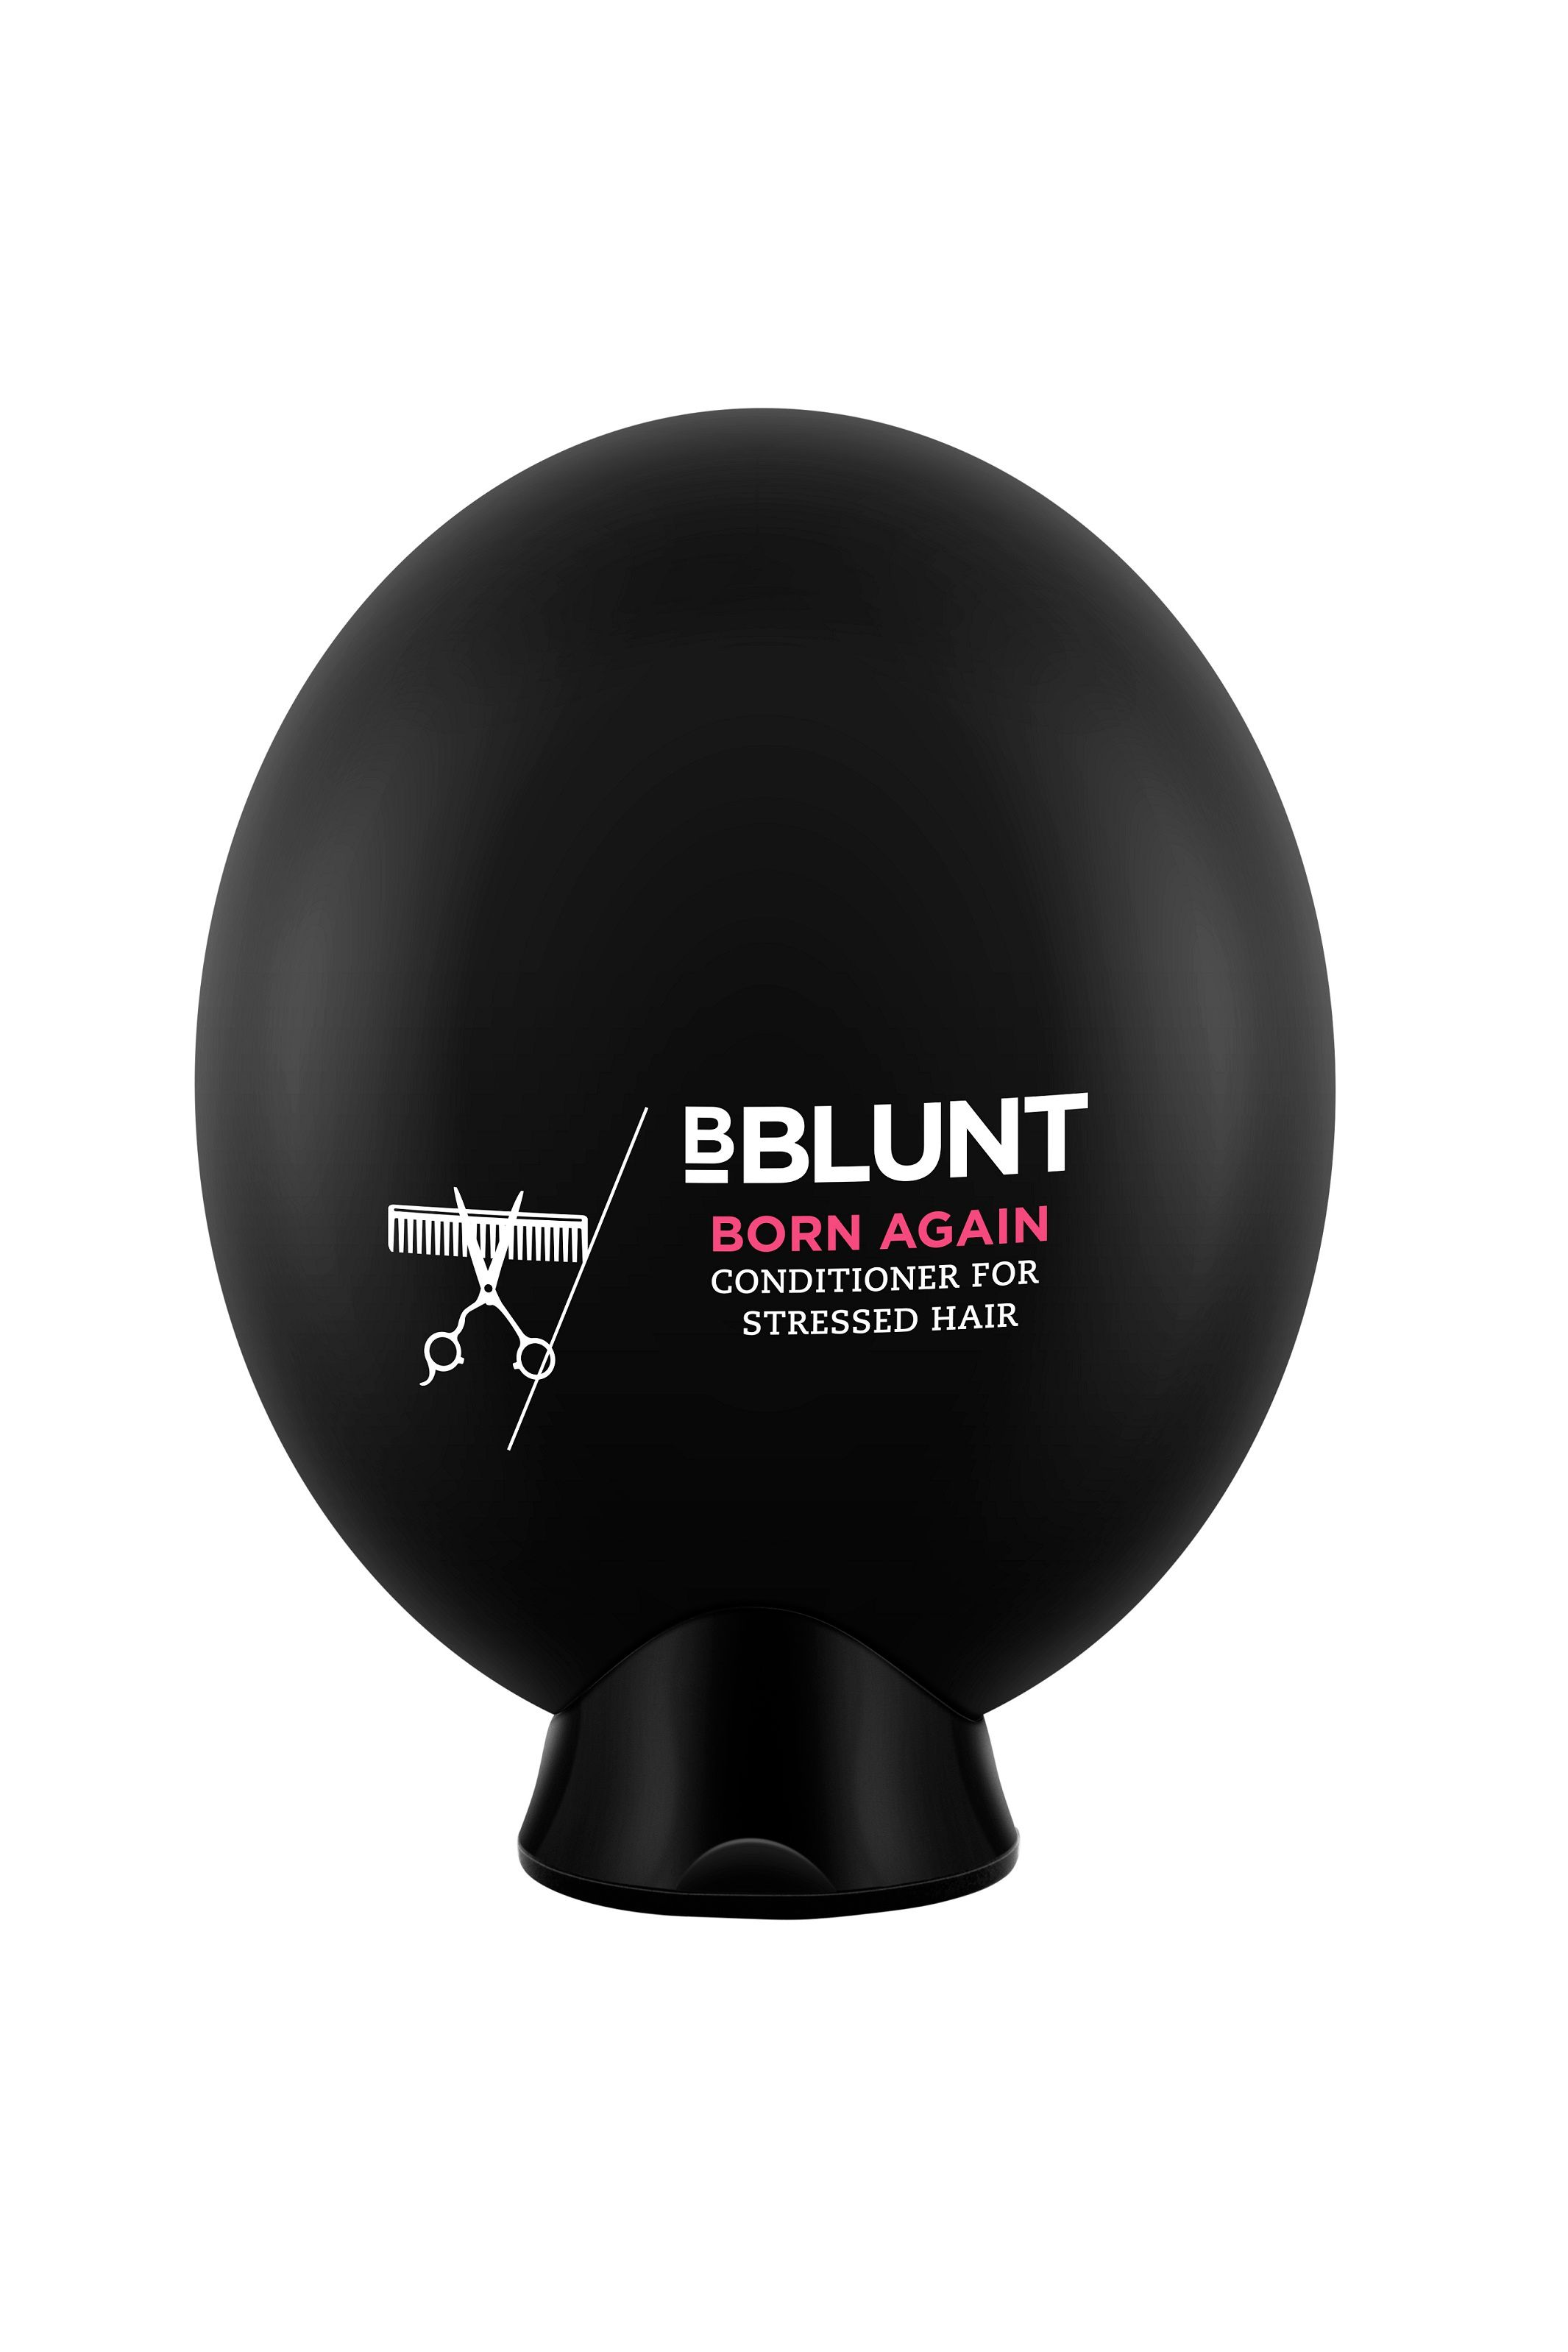 BBLUNT Born Again Conditioner, For Stressed Hair